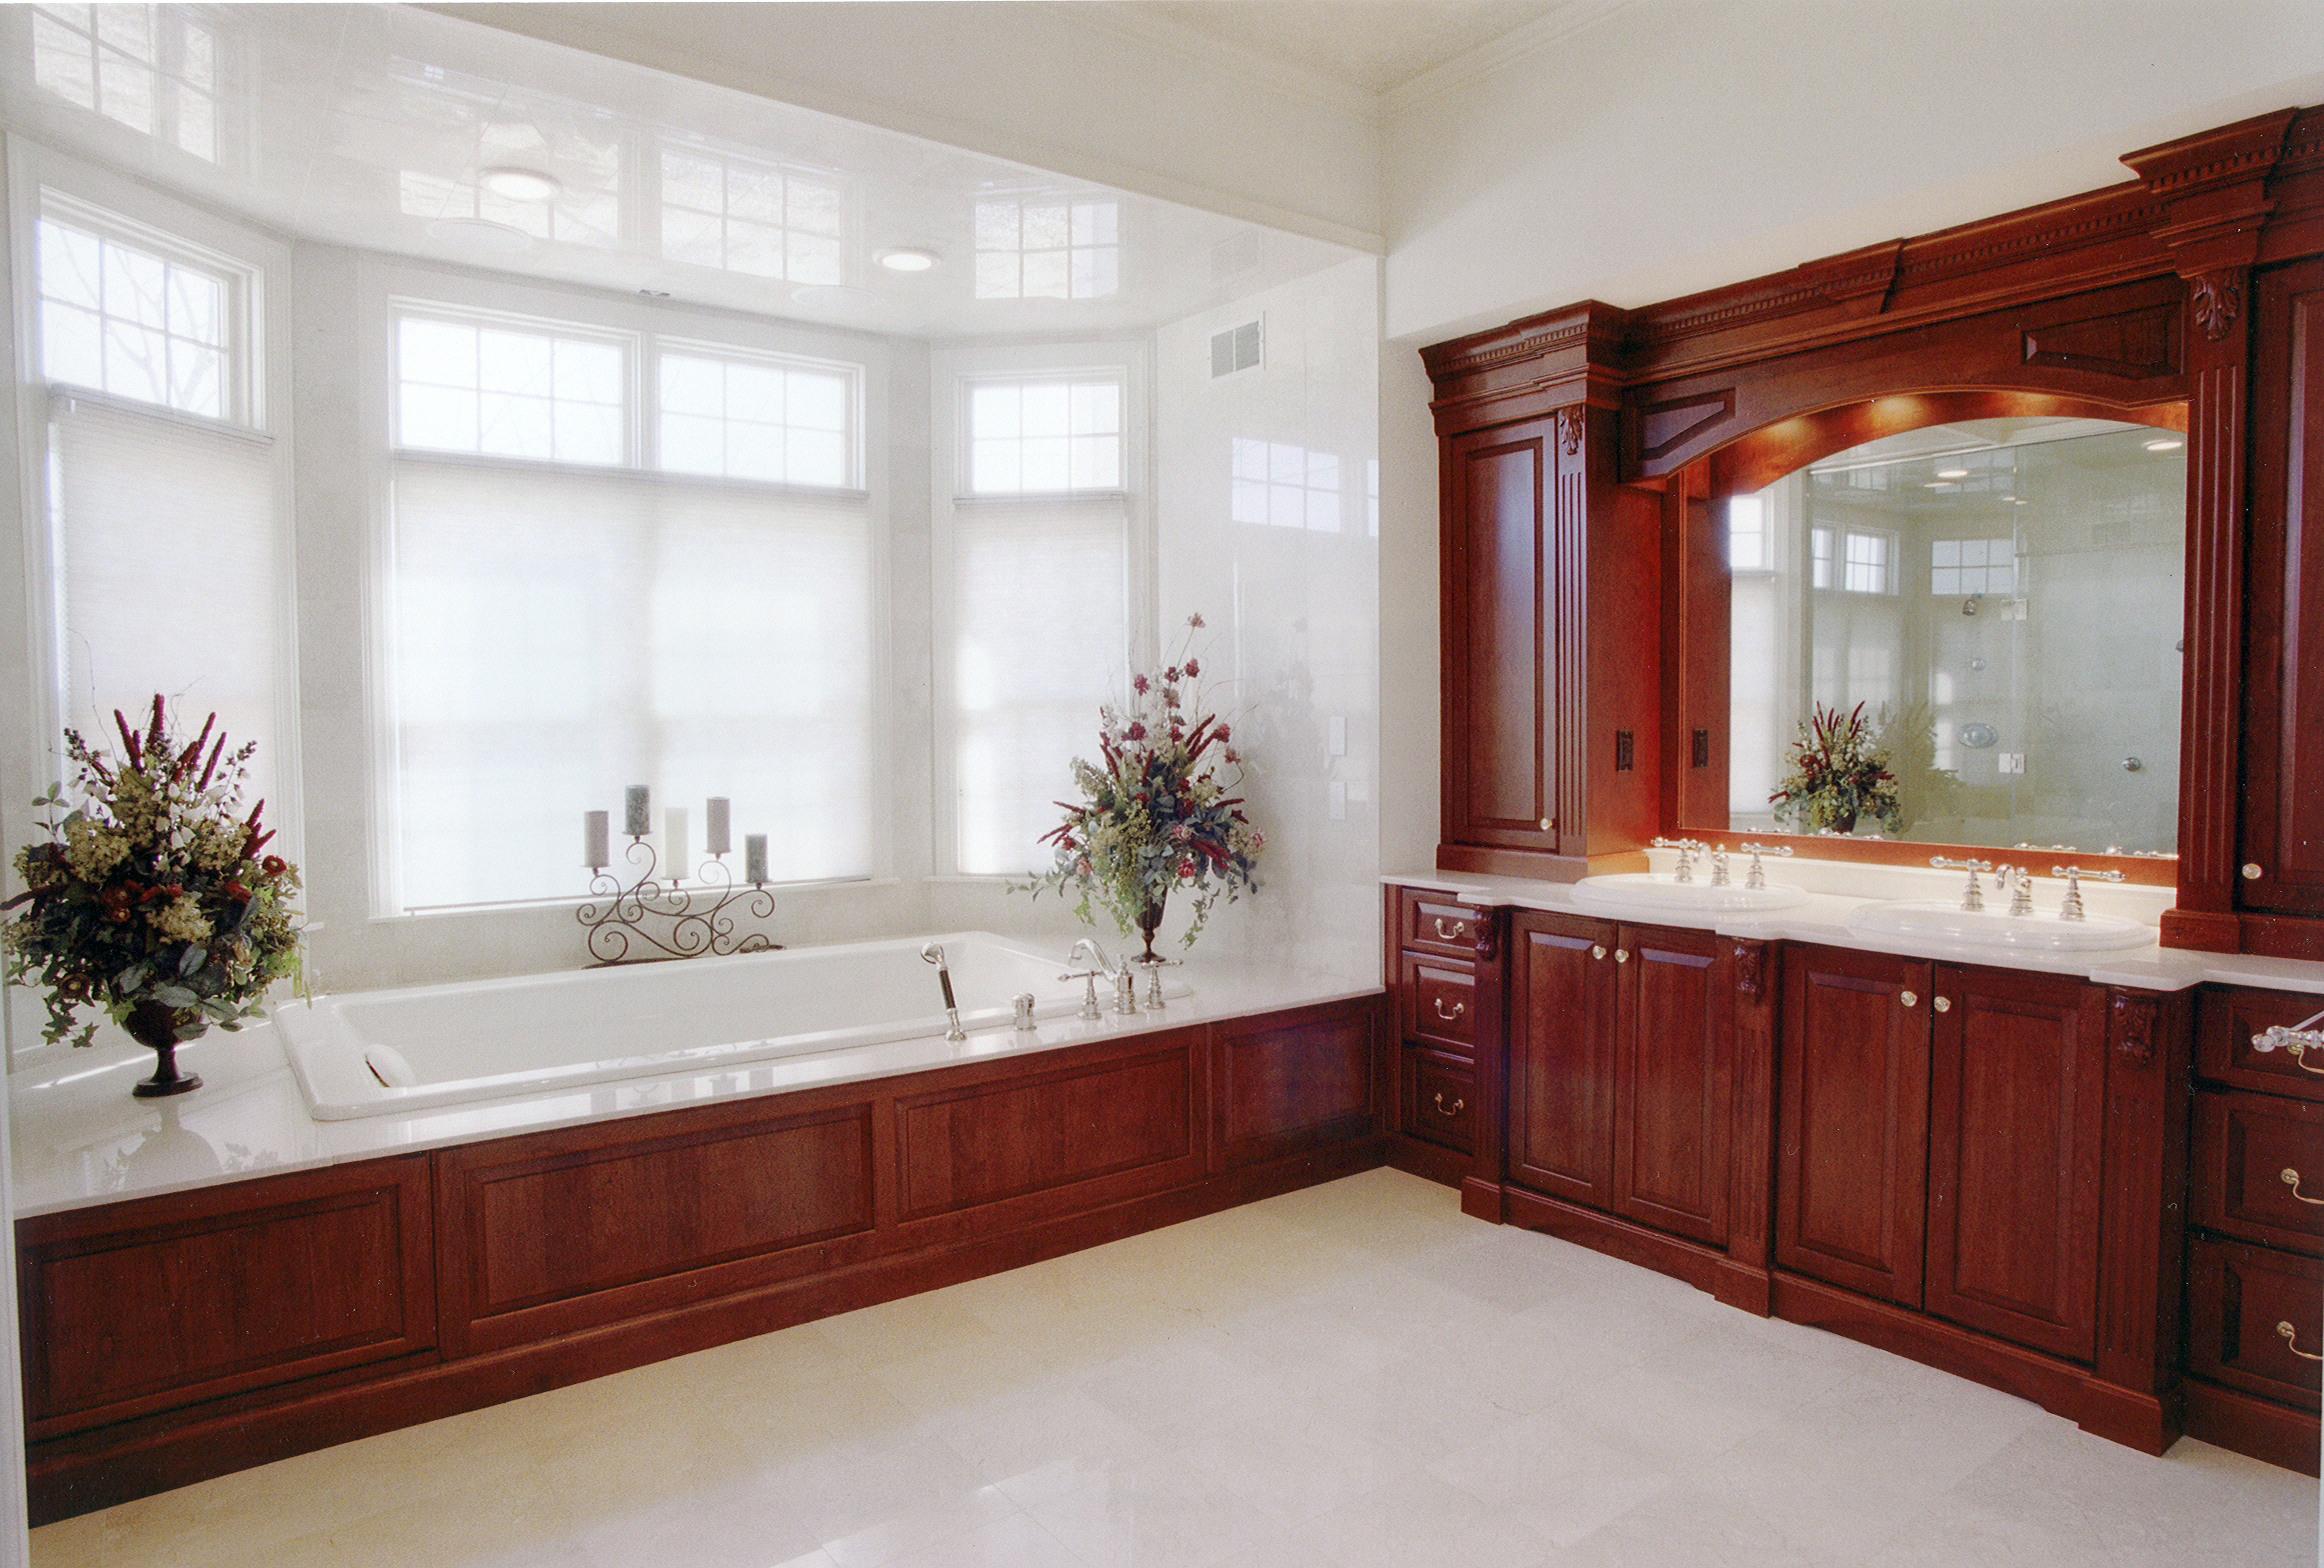 Platinum designs llc custom bathroom cabinetry master for Custom bathrooms